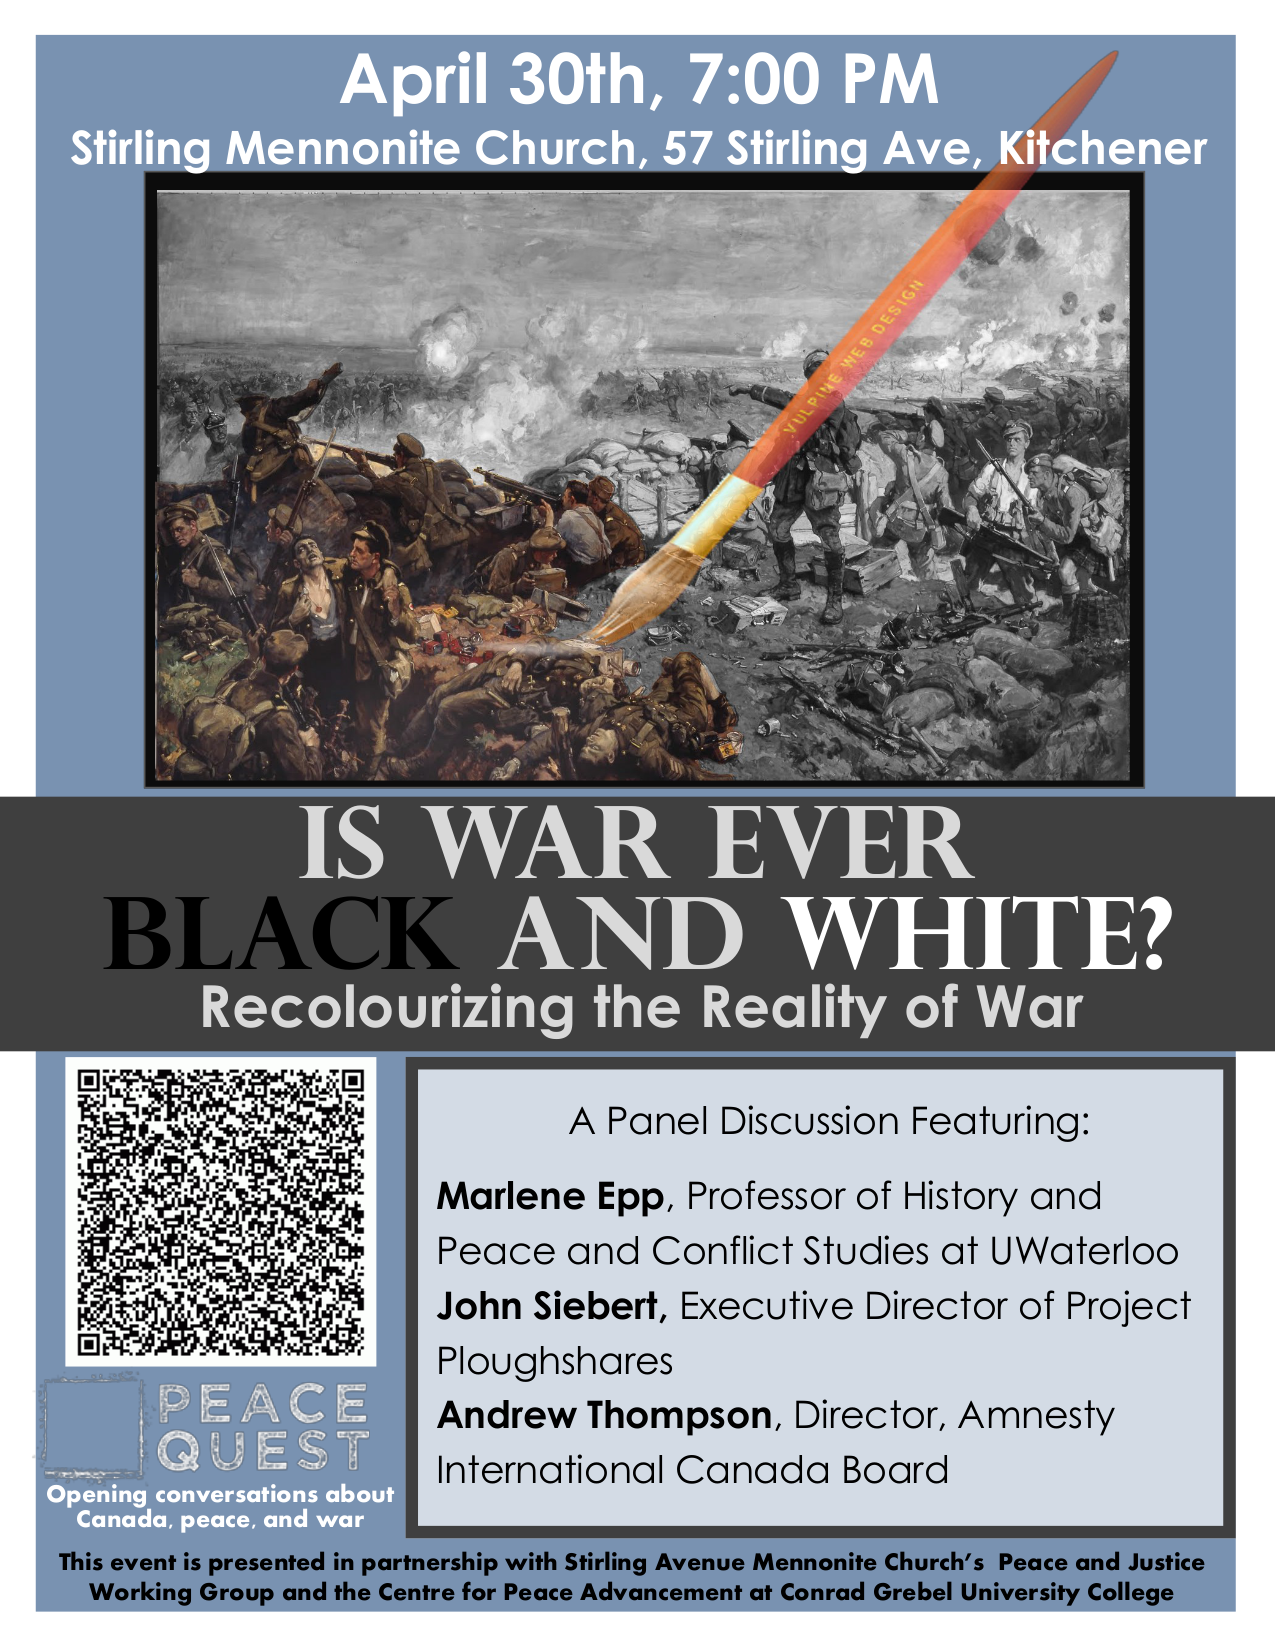 Is War Ever Black and White? Recolourizing the Reality of War